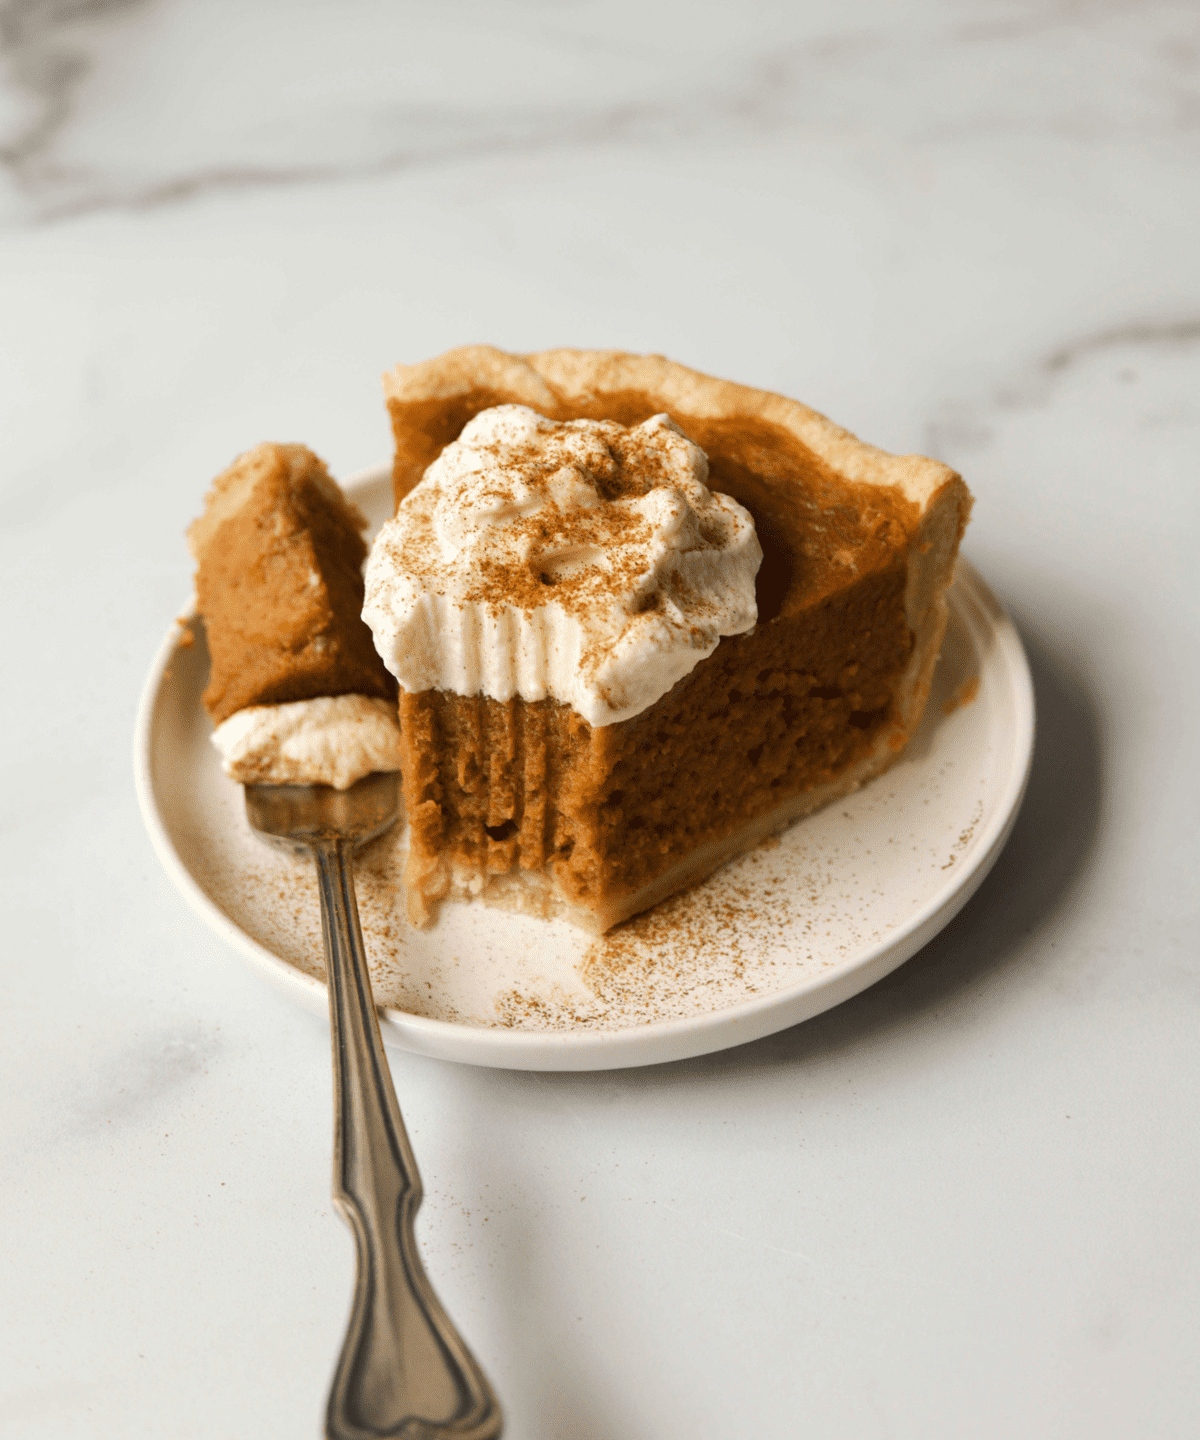 A slice of sweet potato pie with whipped cream on top with a bite missing and a fork on the side.